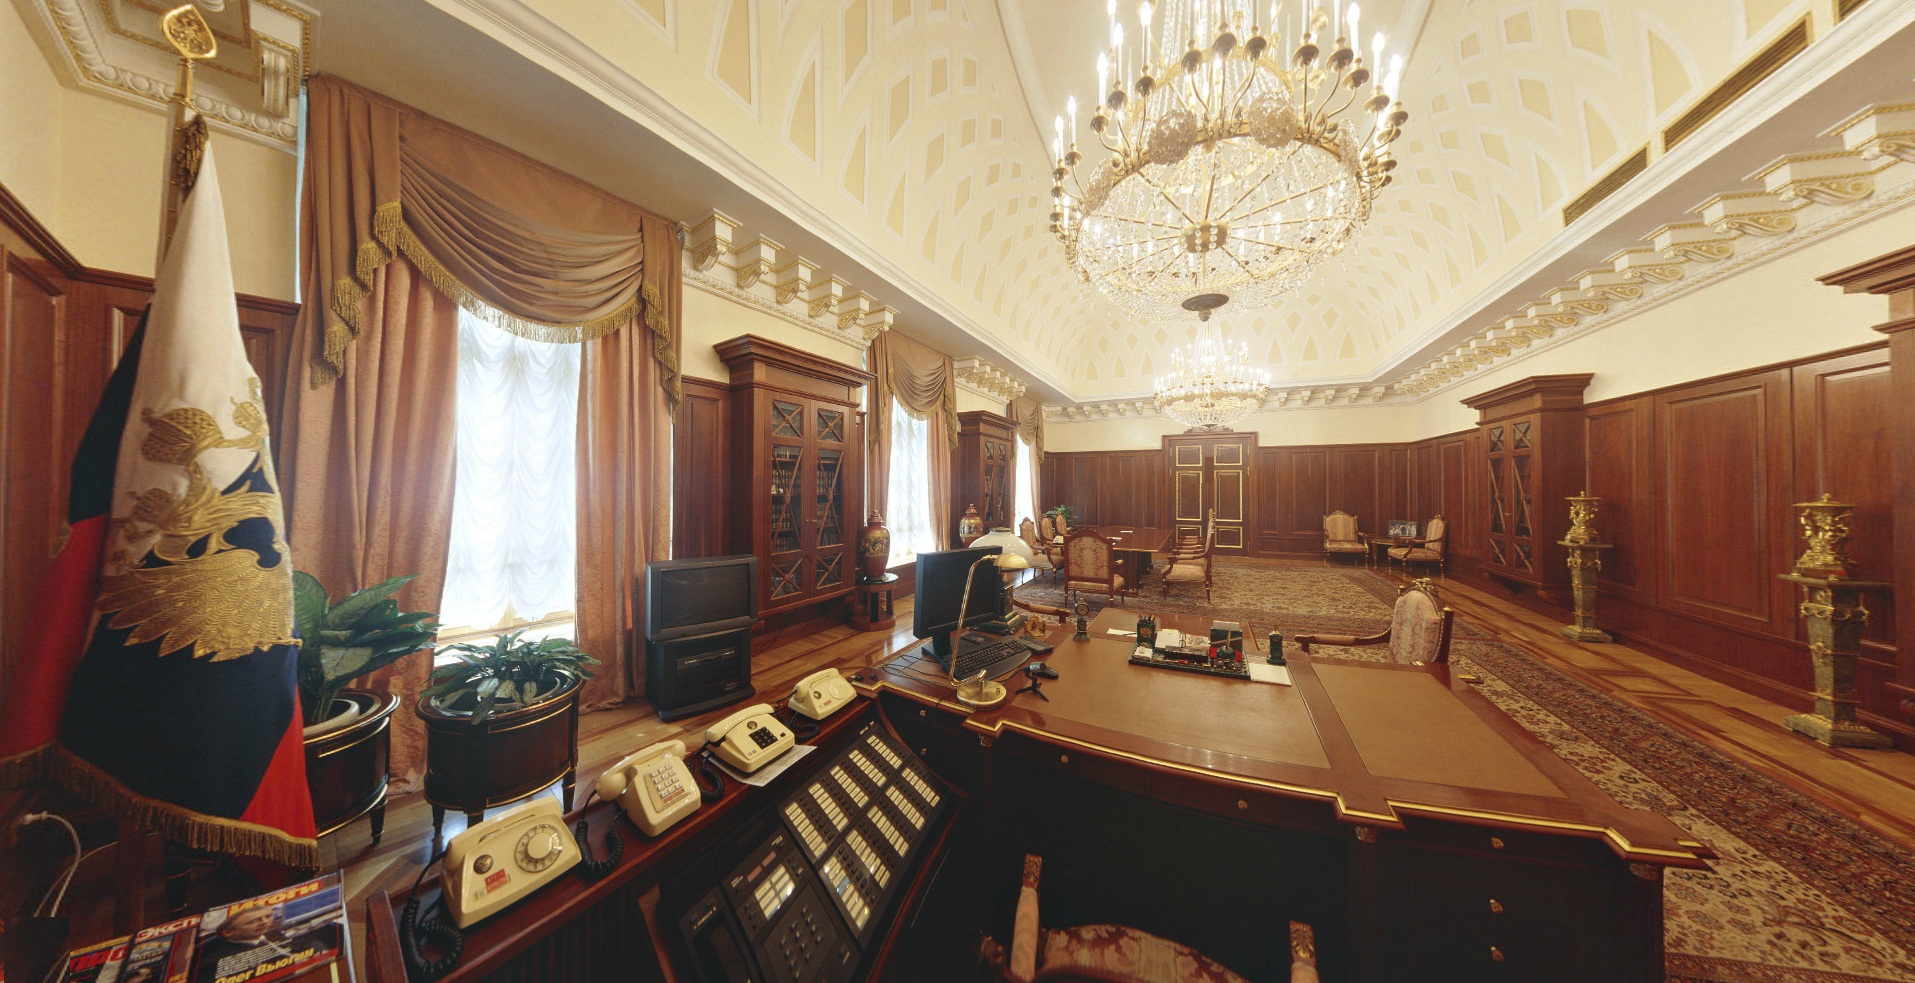 Senate Palace - President work area